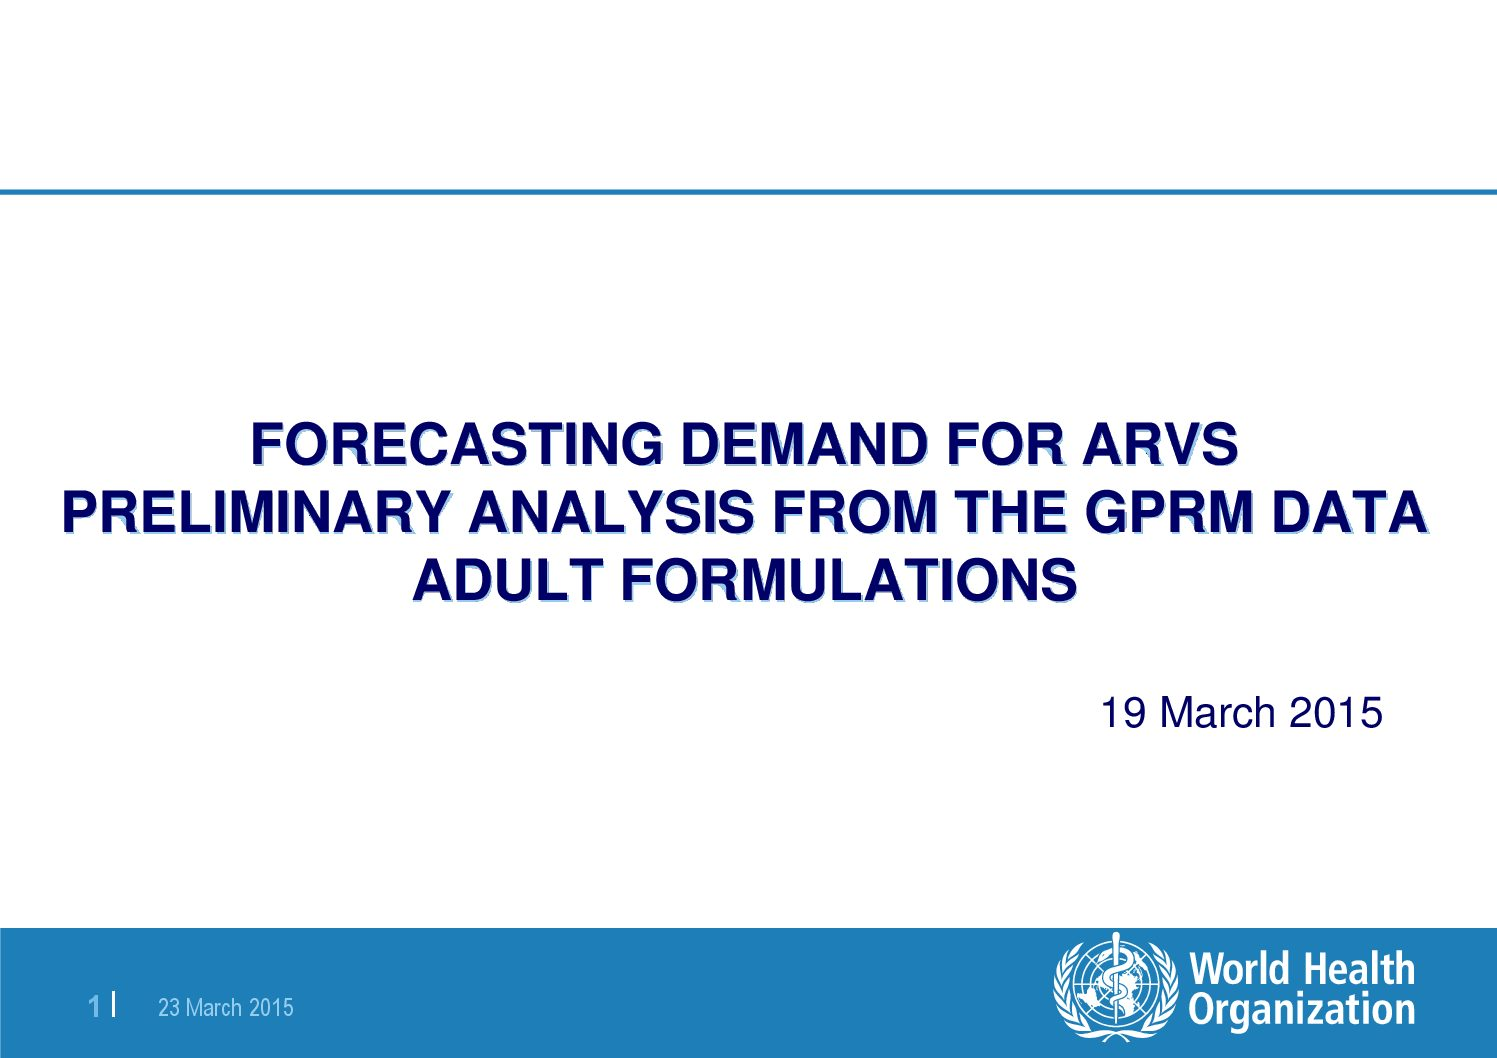 Forecasting demans for ARV's preliminary analysis from the GPRM Data adult formulations.